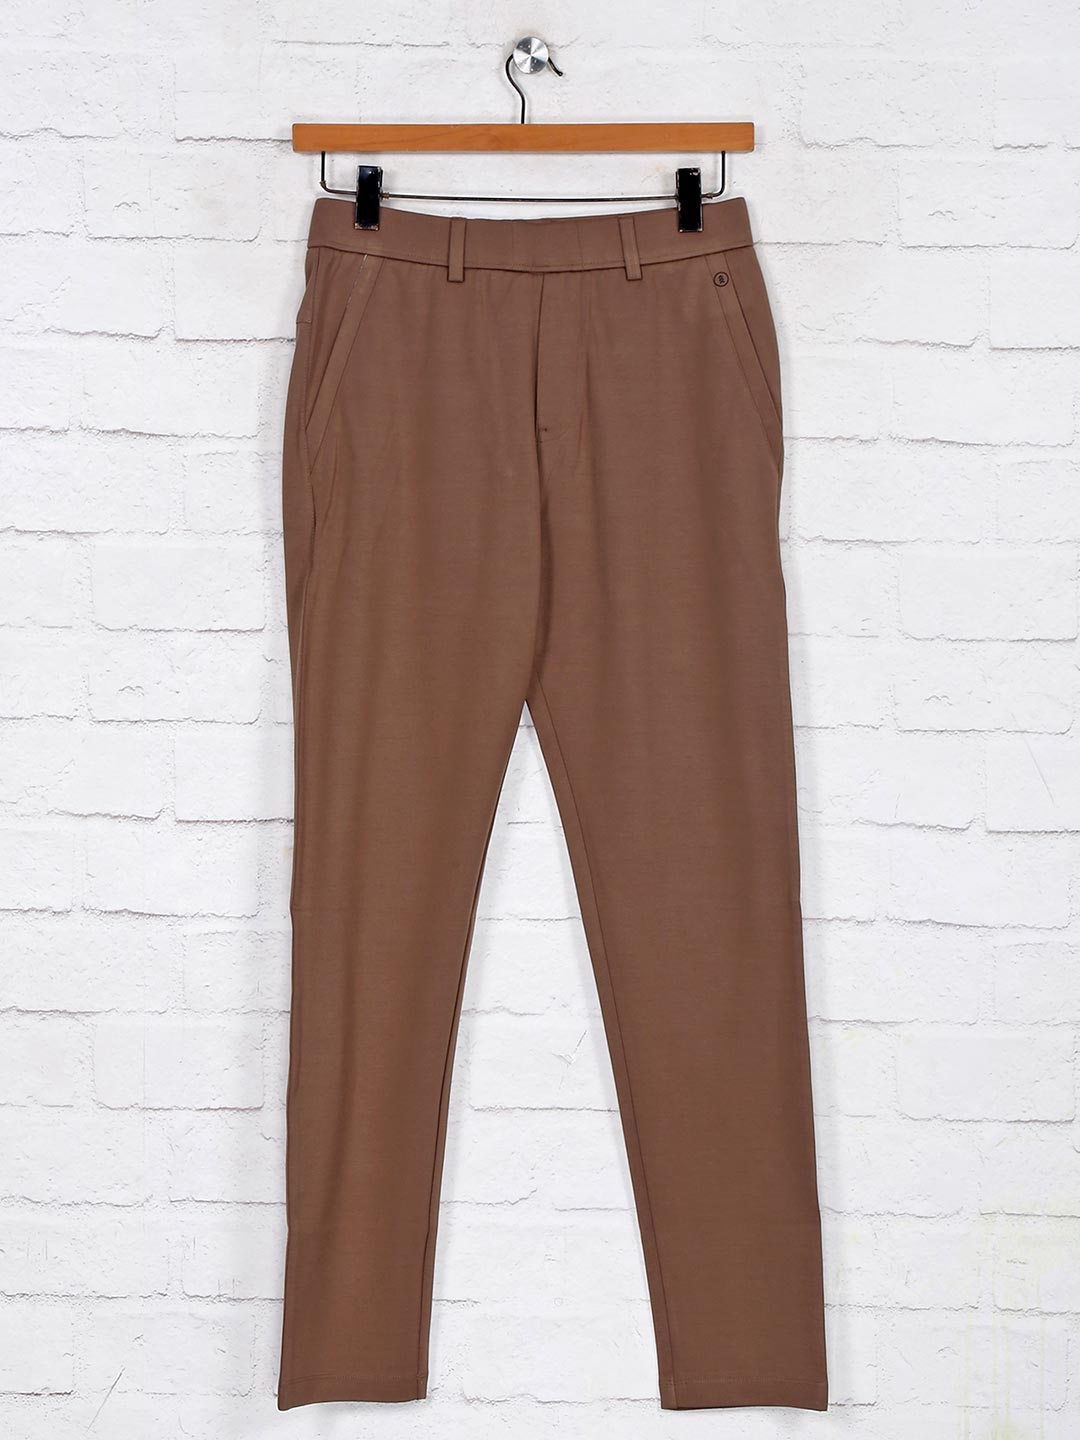 Maml brown cotton solid night track pant?imgeng=w_400